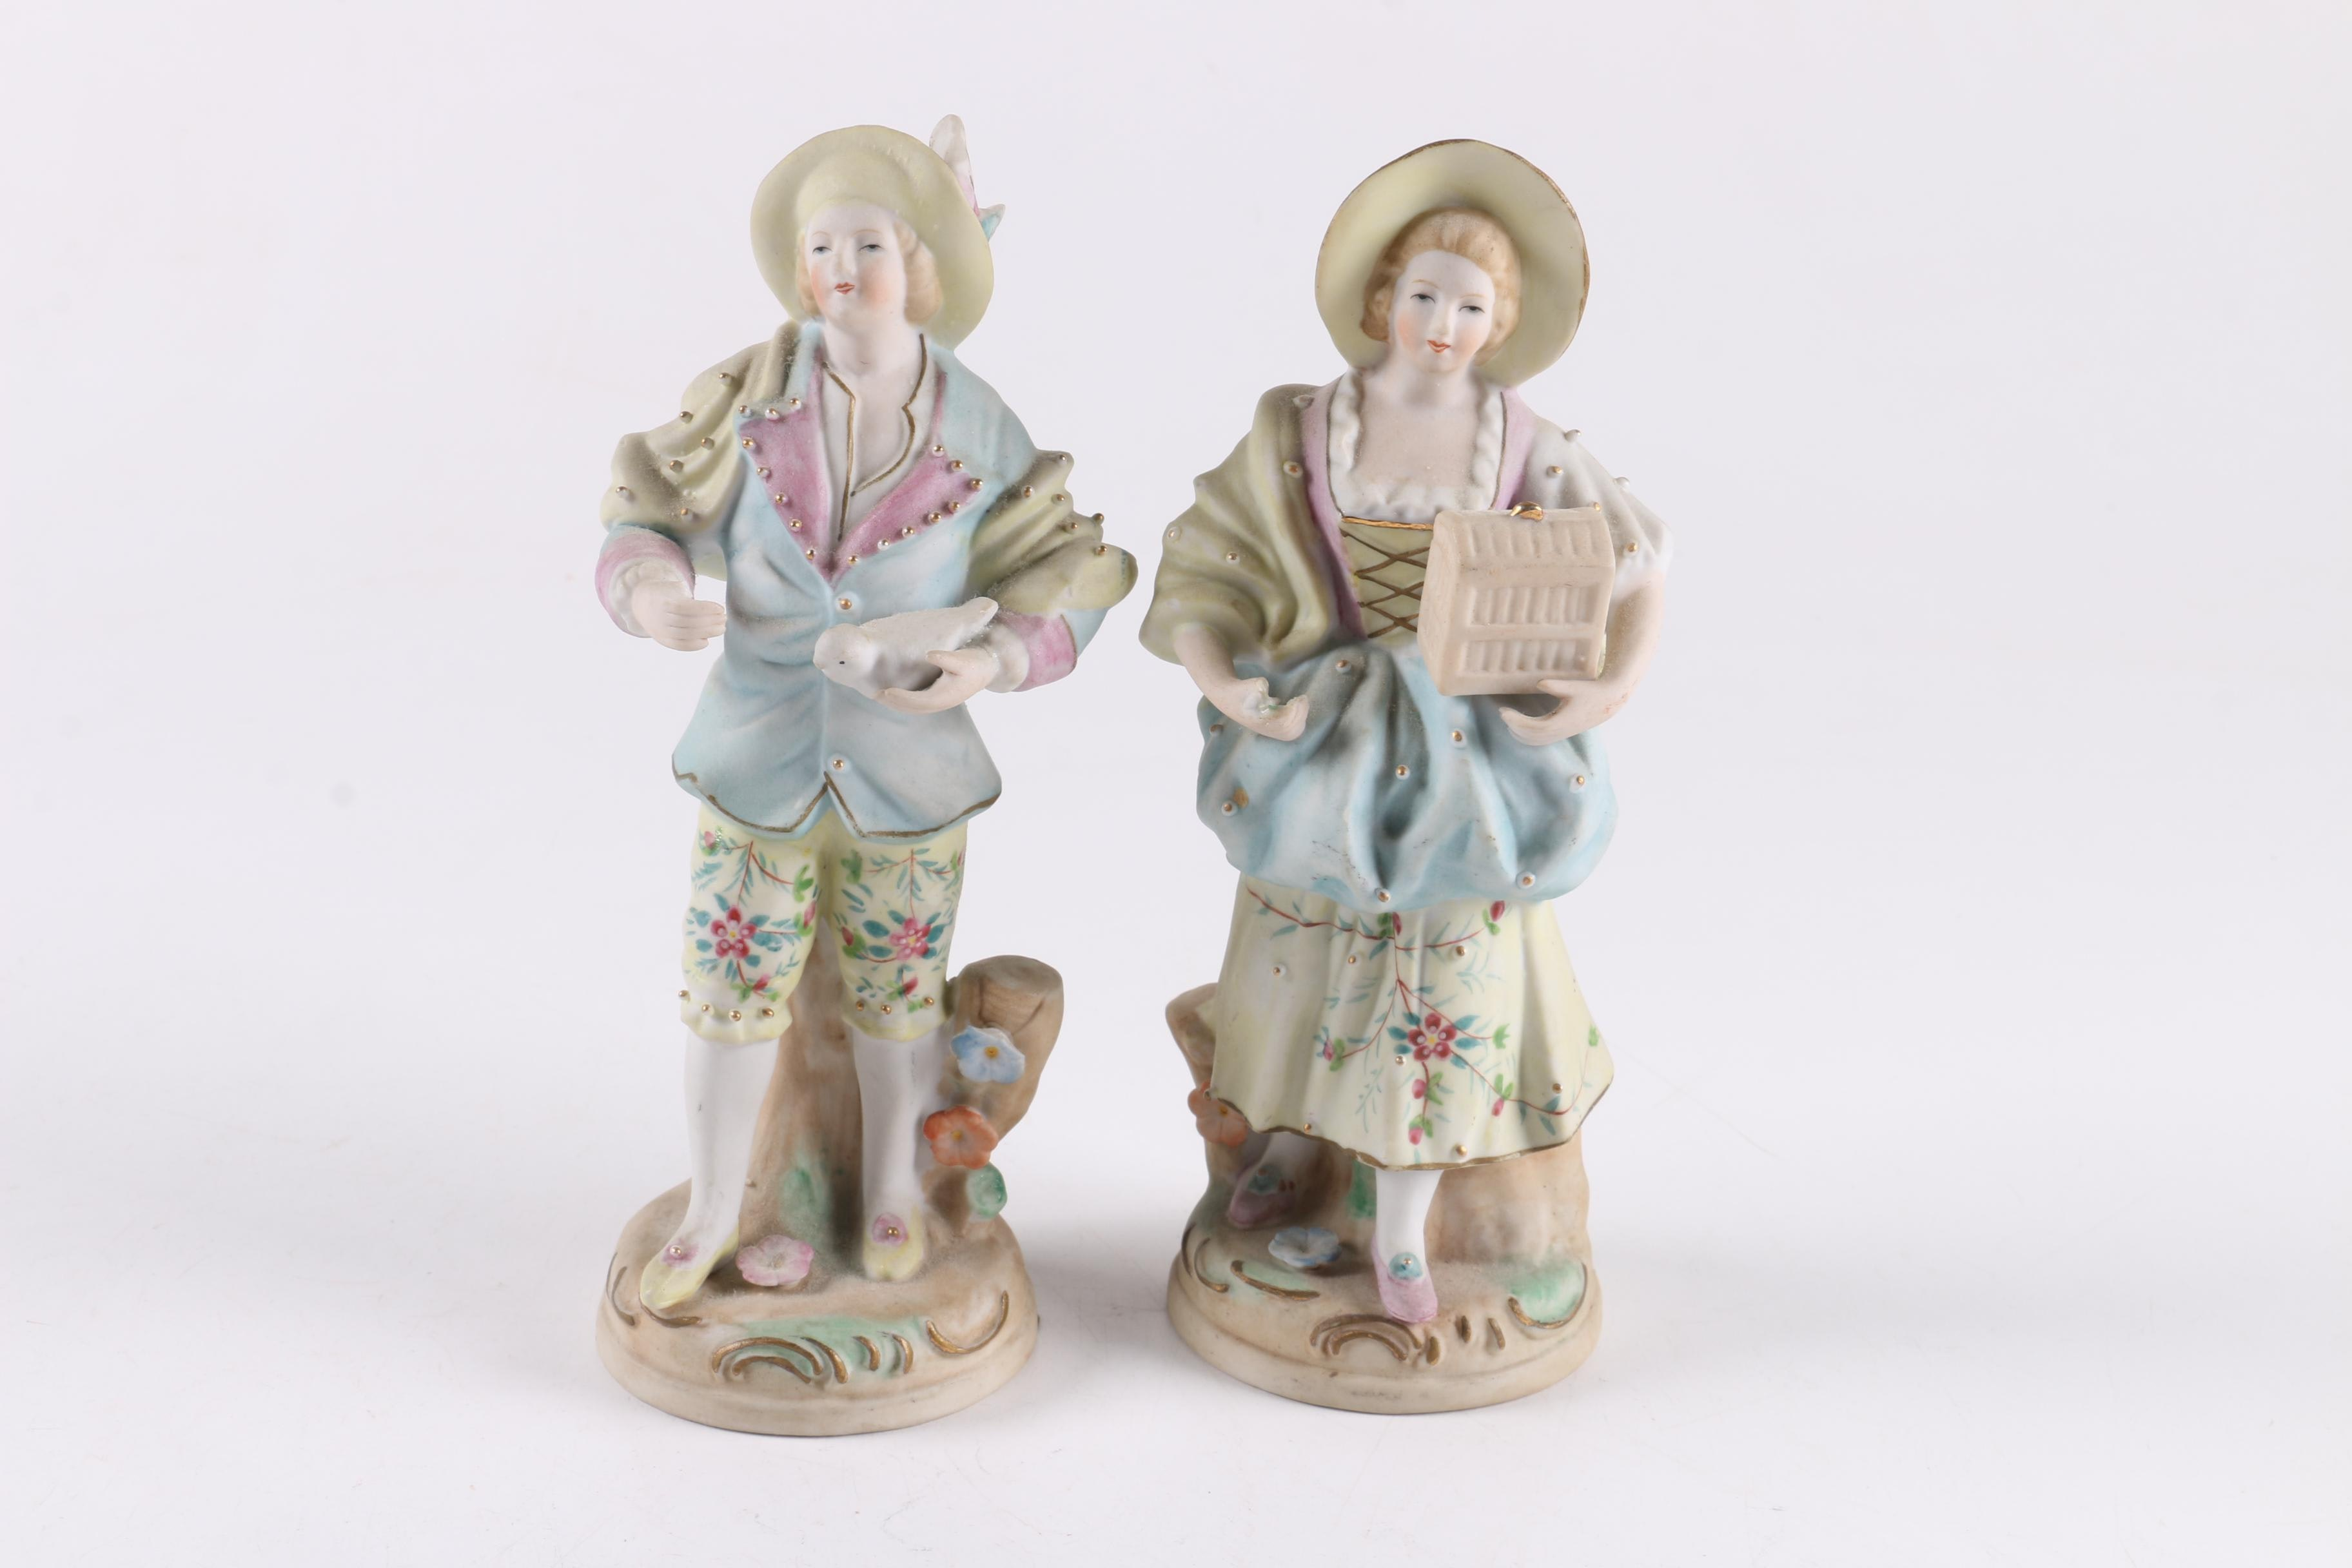 Pair of Vintage Bisque Porcelain Figurines